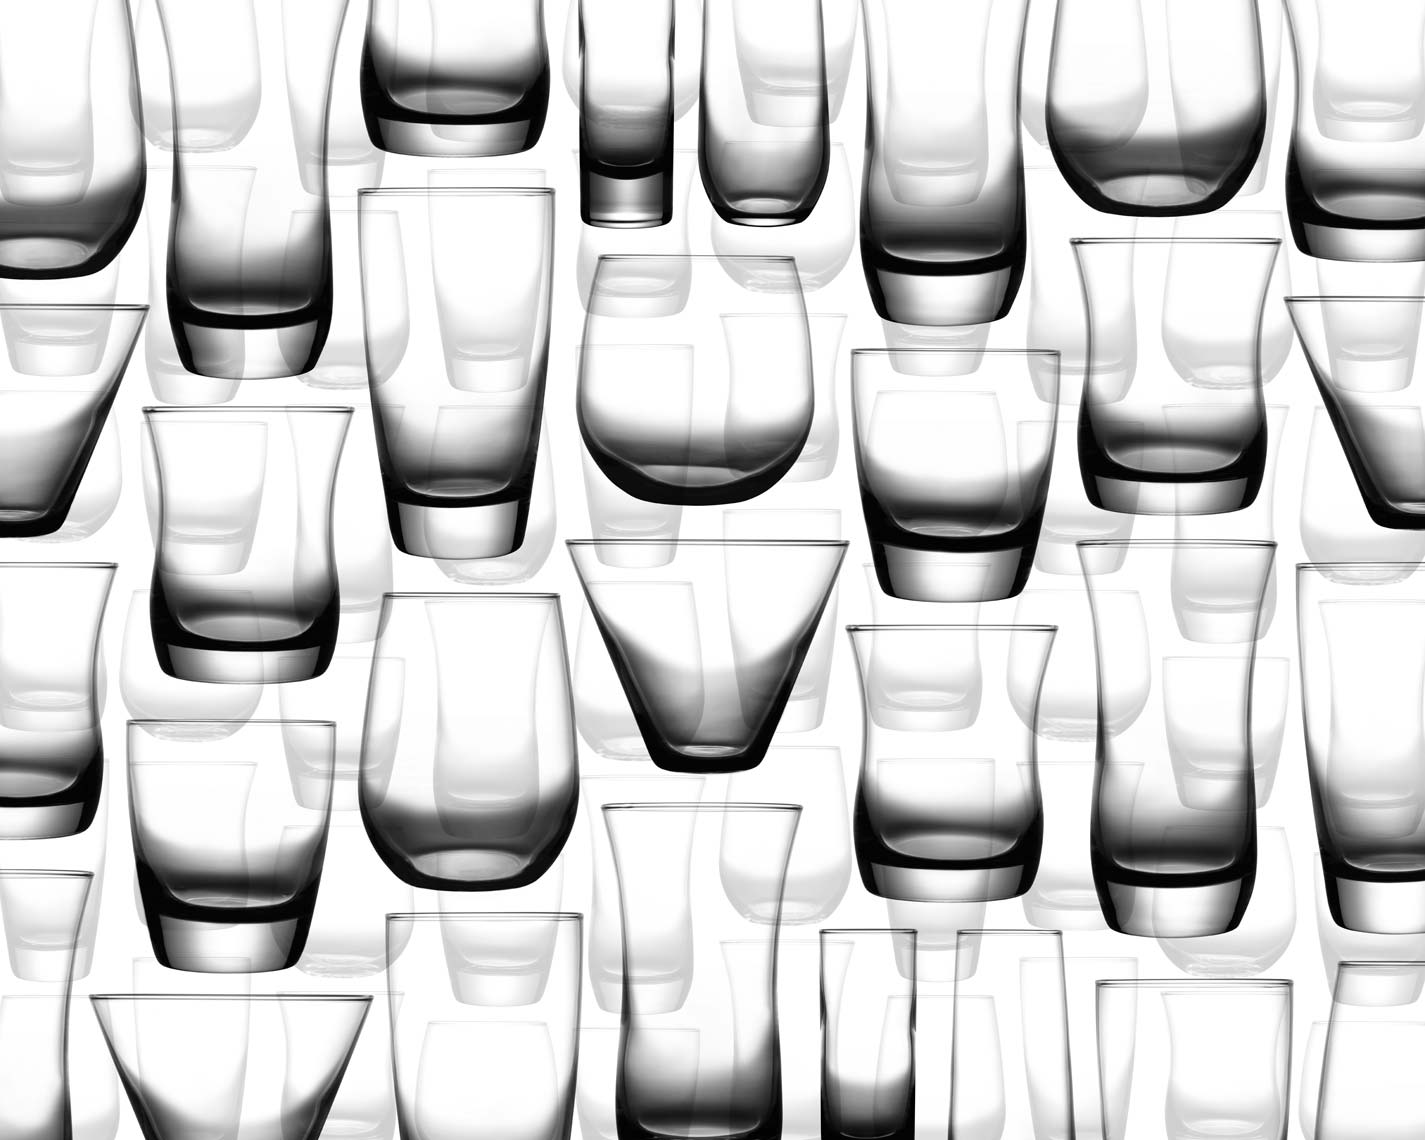 clear glassware in a random pattern